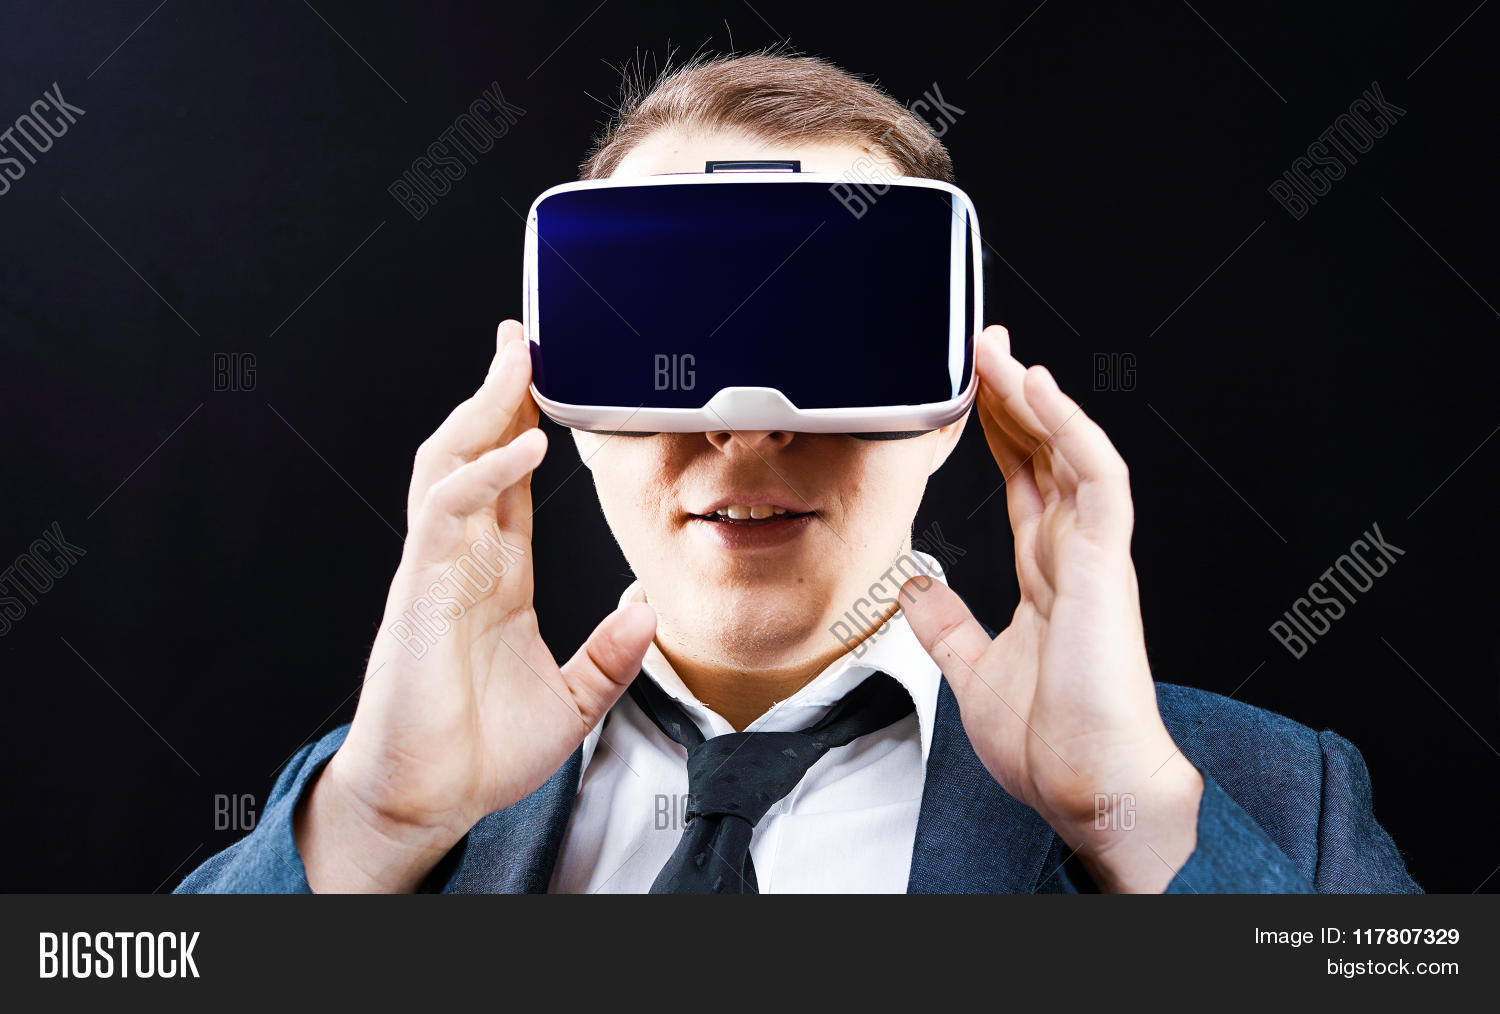 360,3d,amazing,businessman,computer,control,cyber,degrees,device,digital,display,electronic,emotions,emulator,entertainment,equipment,future,futuristic,glasses,head,head-mounted,hmi,industry,interactive,interface,looking,machine,man,mask,motion,movement,reality,science,screen,simulation,simulator,station,technology,touch,tracking,video,virtual,virtuality,vision,vr,watch,wide,working